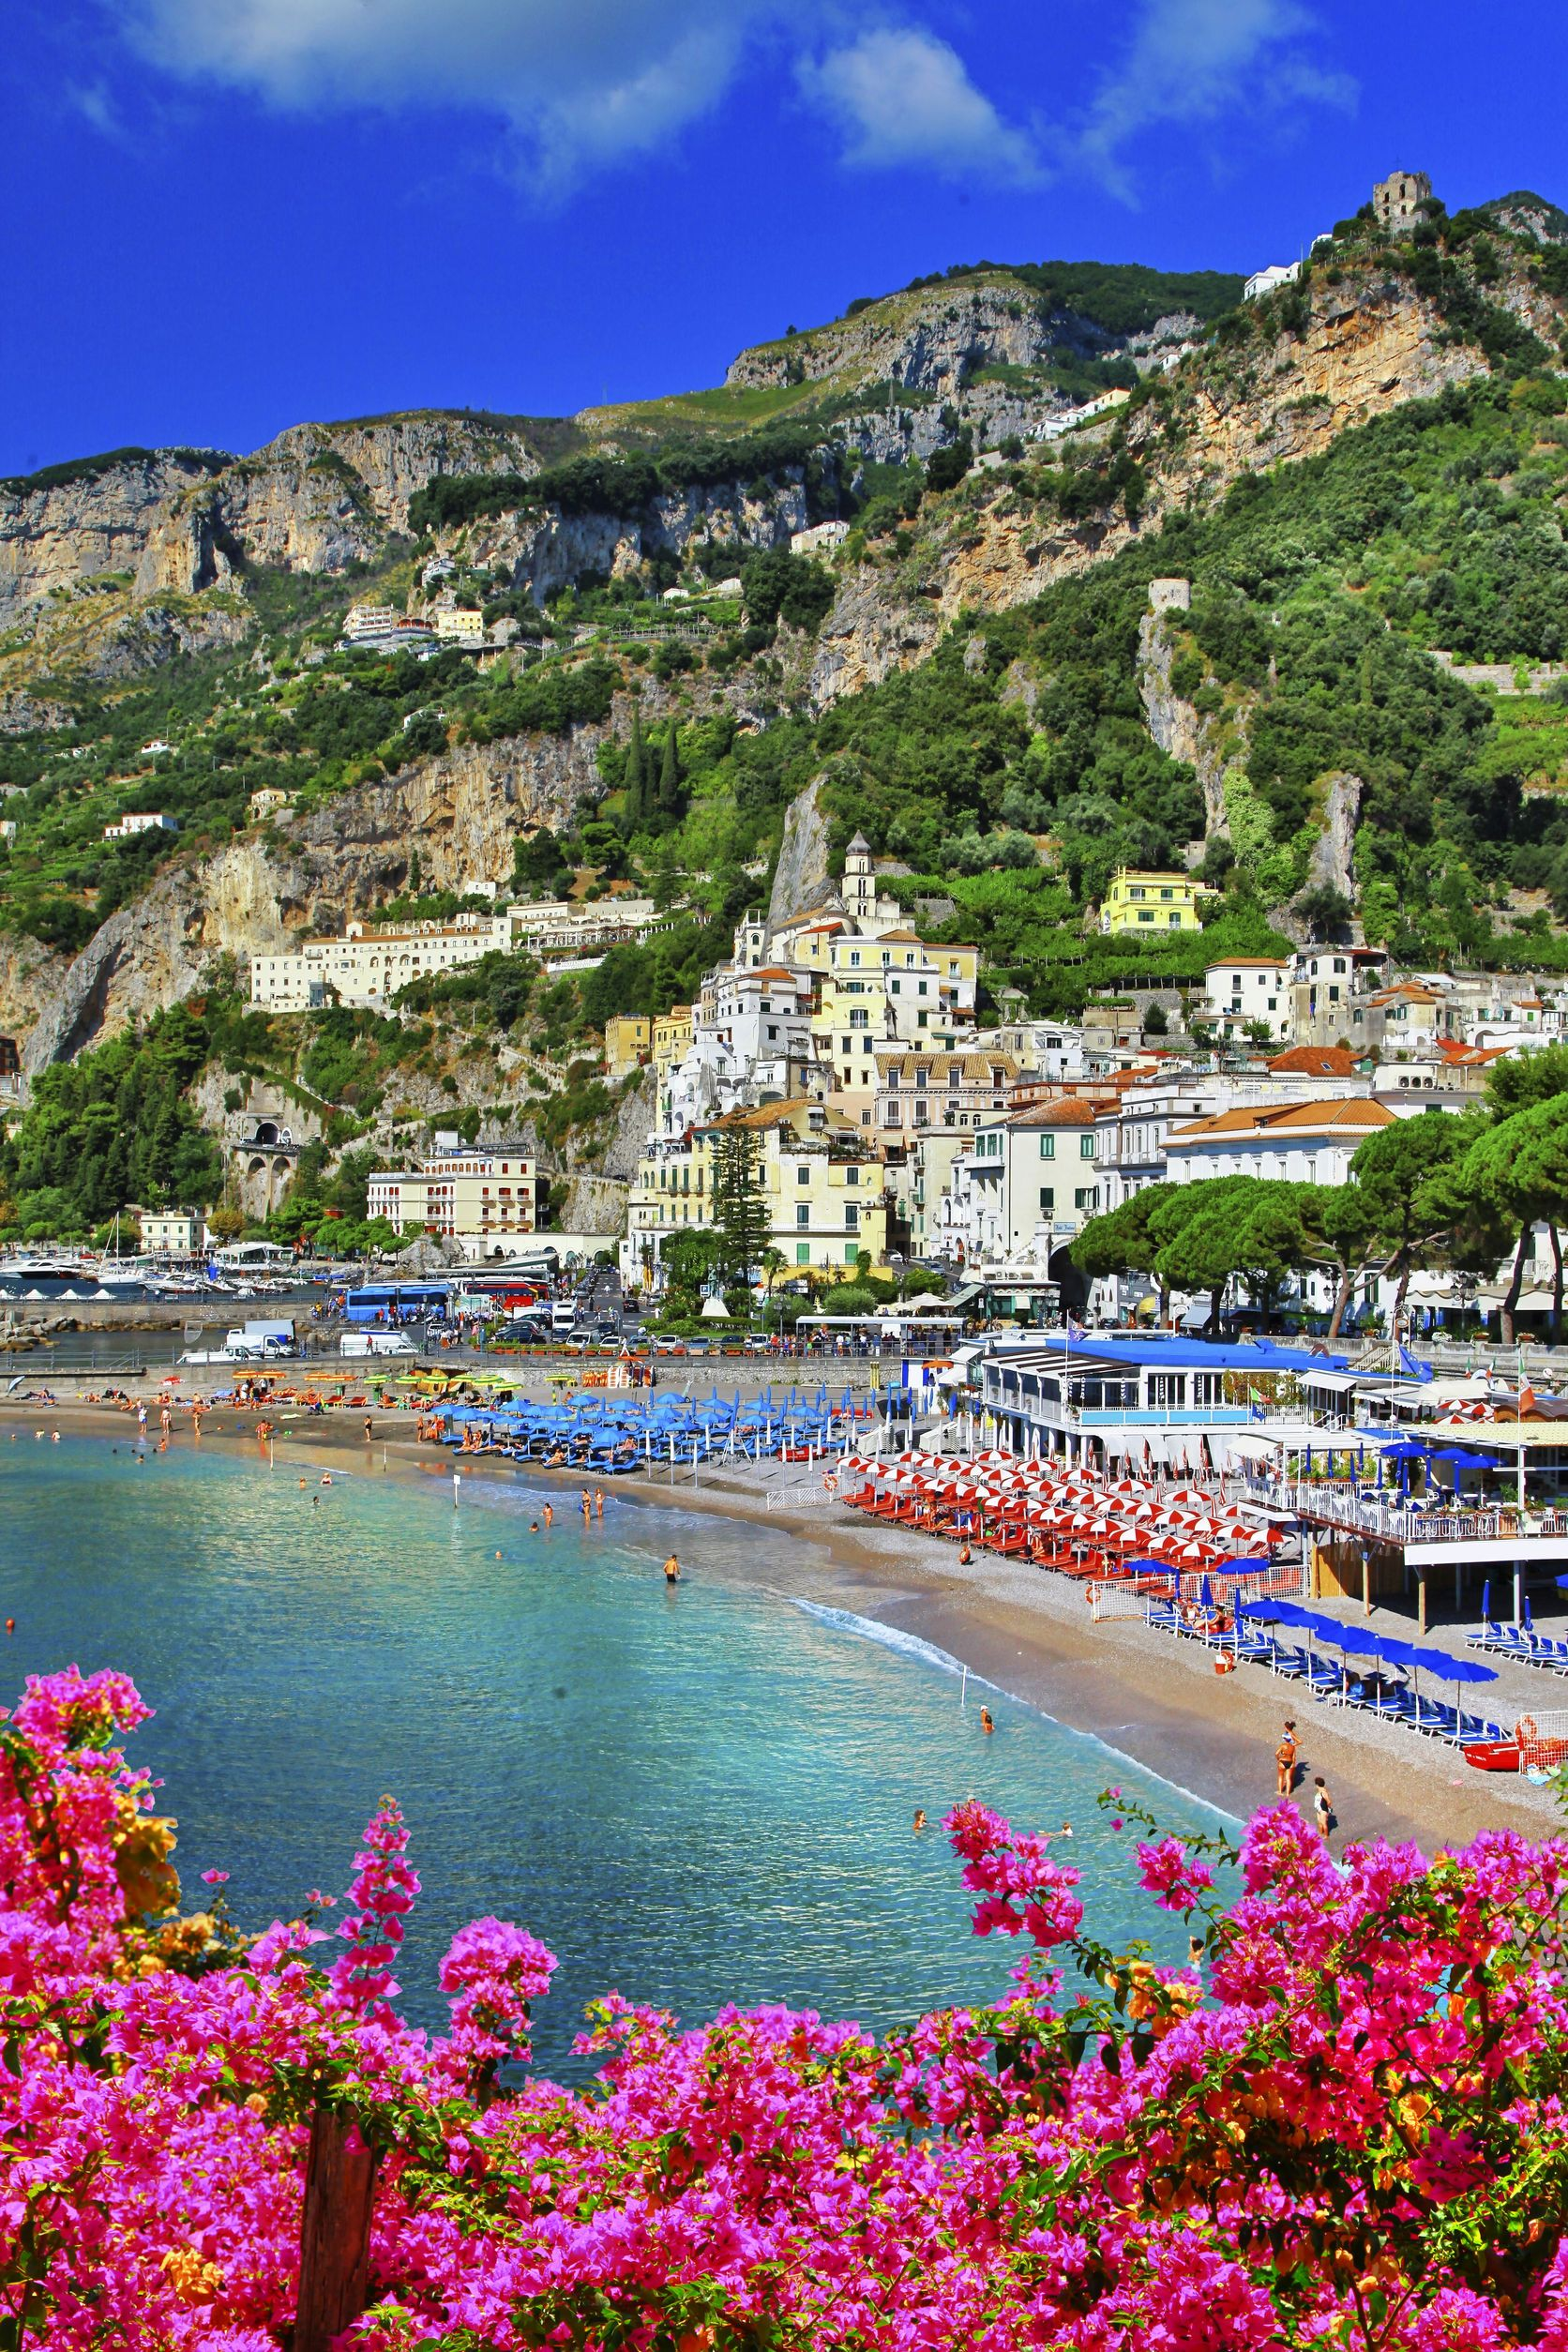 Beautiful Scene Of Amalficoast Italy L Places To Visit L Travel Destination L Tourism Amazing Travel Destinations Amalfi Coast Beautiful Places Nature